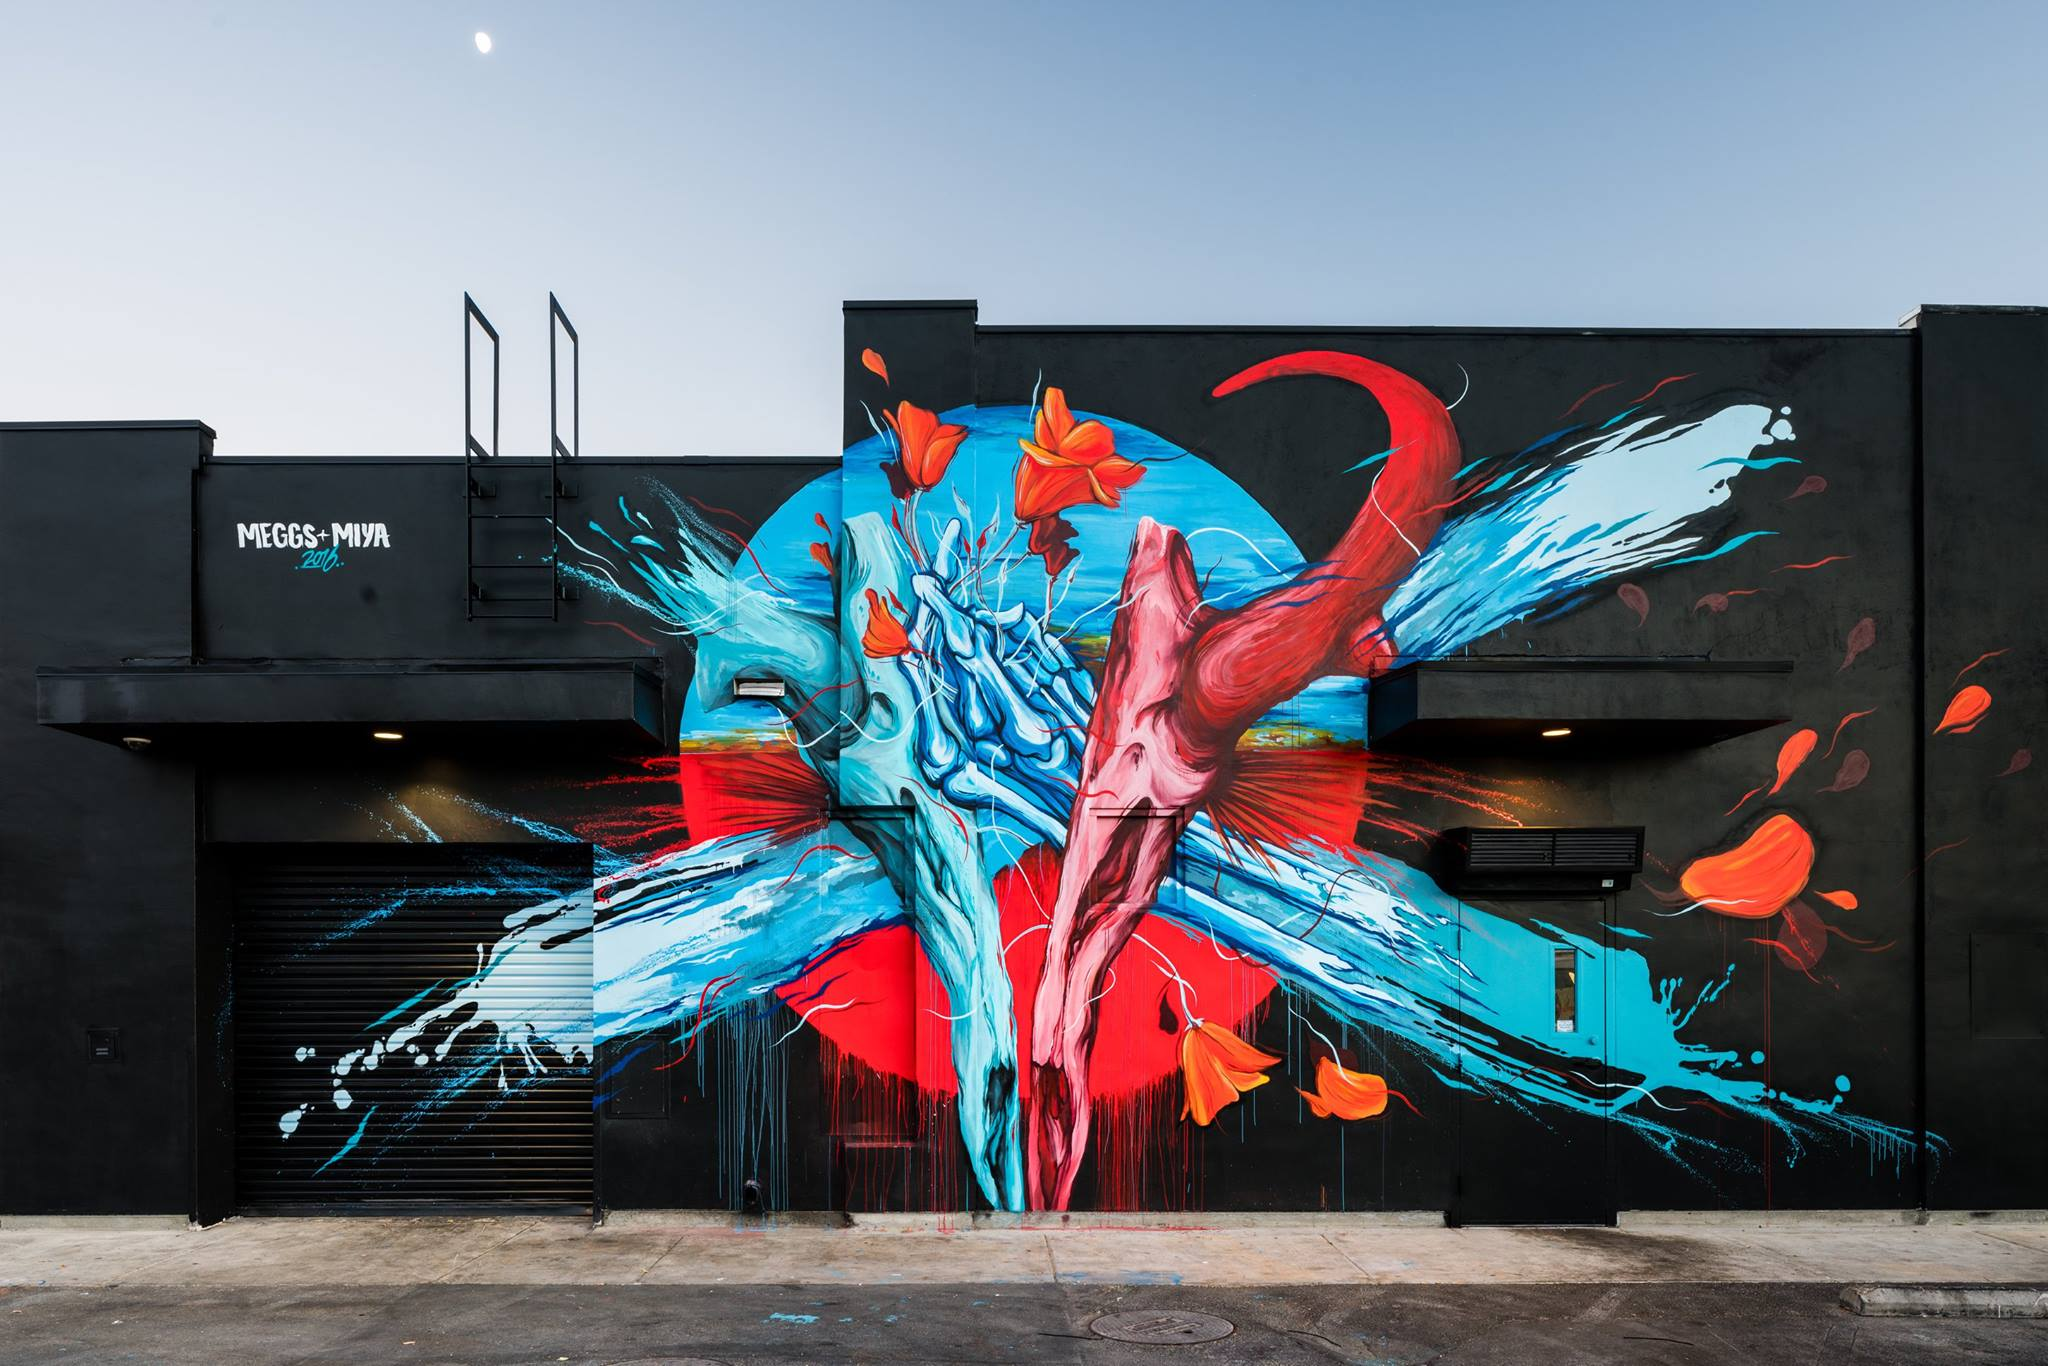 Take a look at Pow! Wow! Antelope Valley, supported by the Lancaster Museum of Art and History and Thinkspace Gallery. Featured artists are Amandalynn and MEGGS. Photo Credit: @bshigeta Project: Mural festival supported by @moahlancaster @thinkspacegallery @powwowworldwide